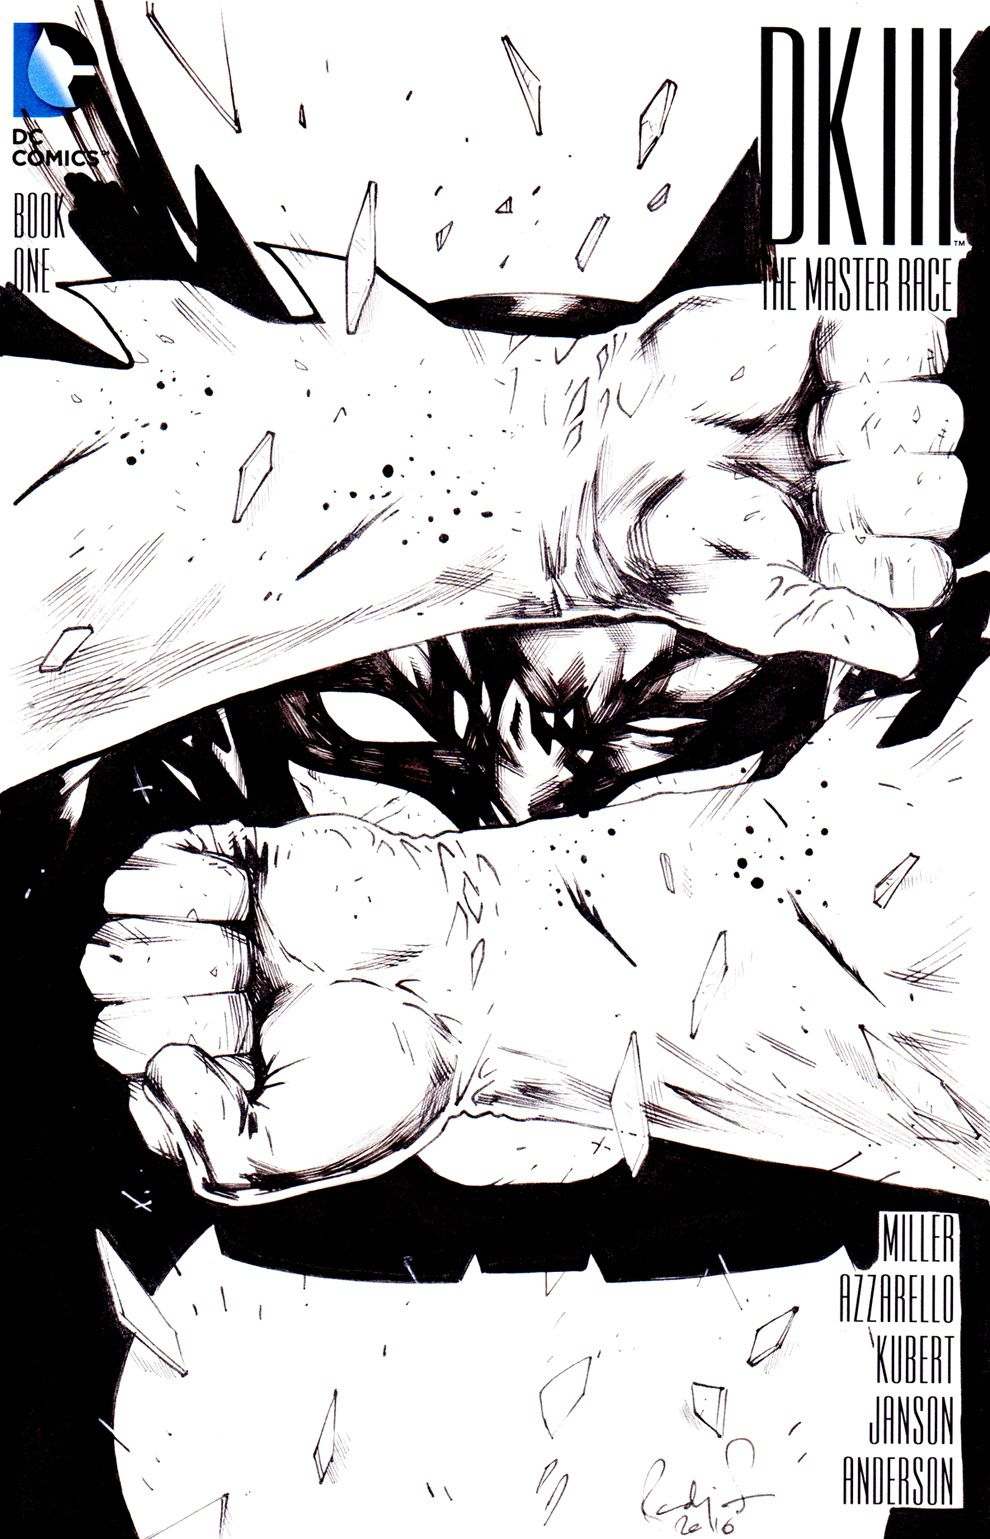 Original Dark Knight blankcover